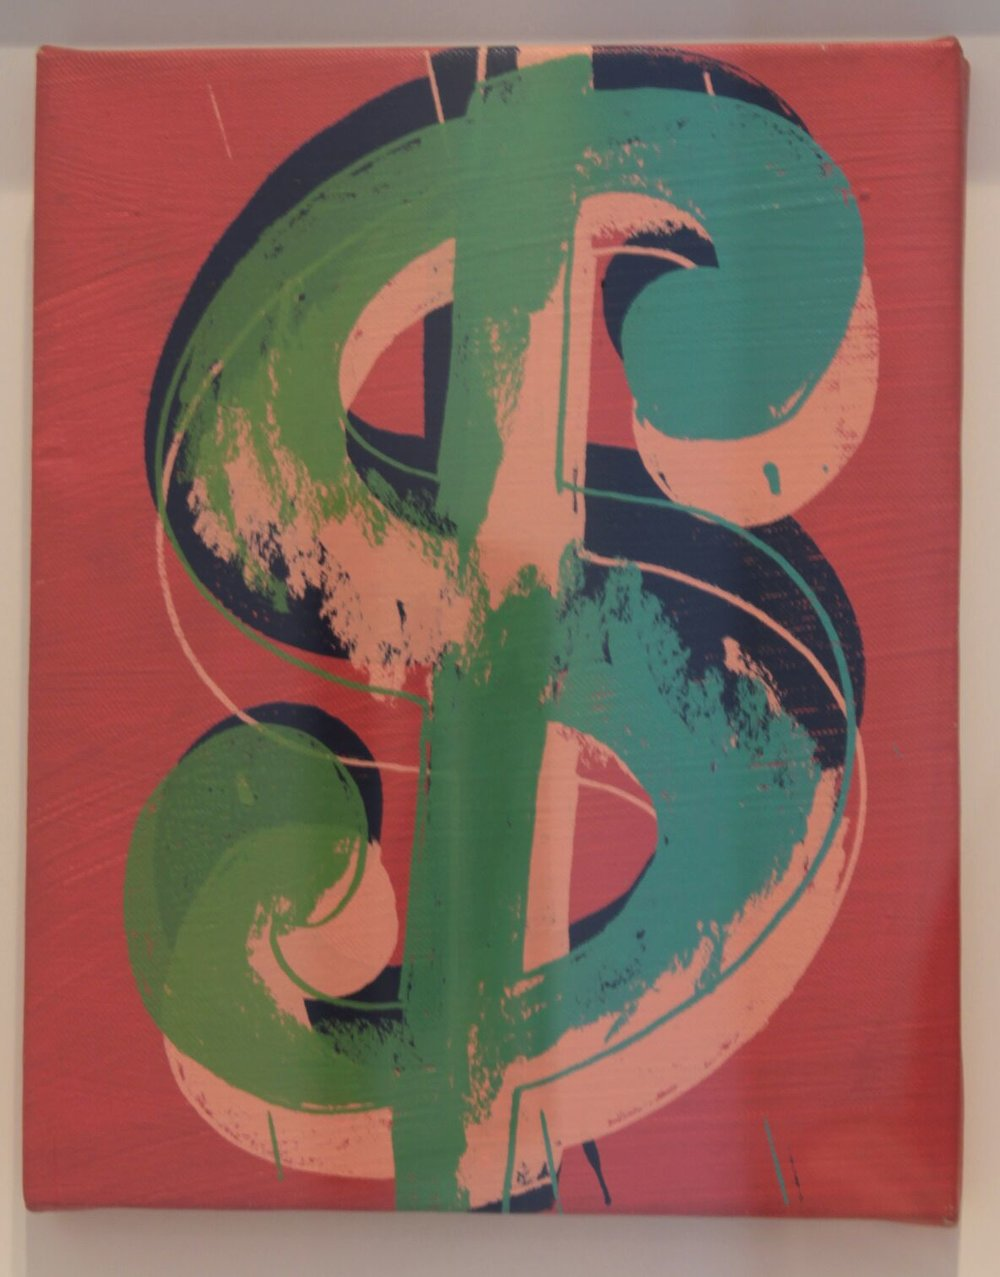 Dollar Sign,   1982  Mixed technique on canvas  25 x 20 cm   NOT FOR SALE